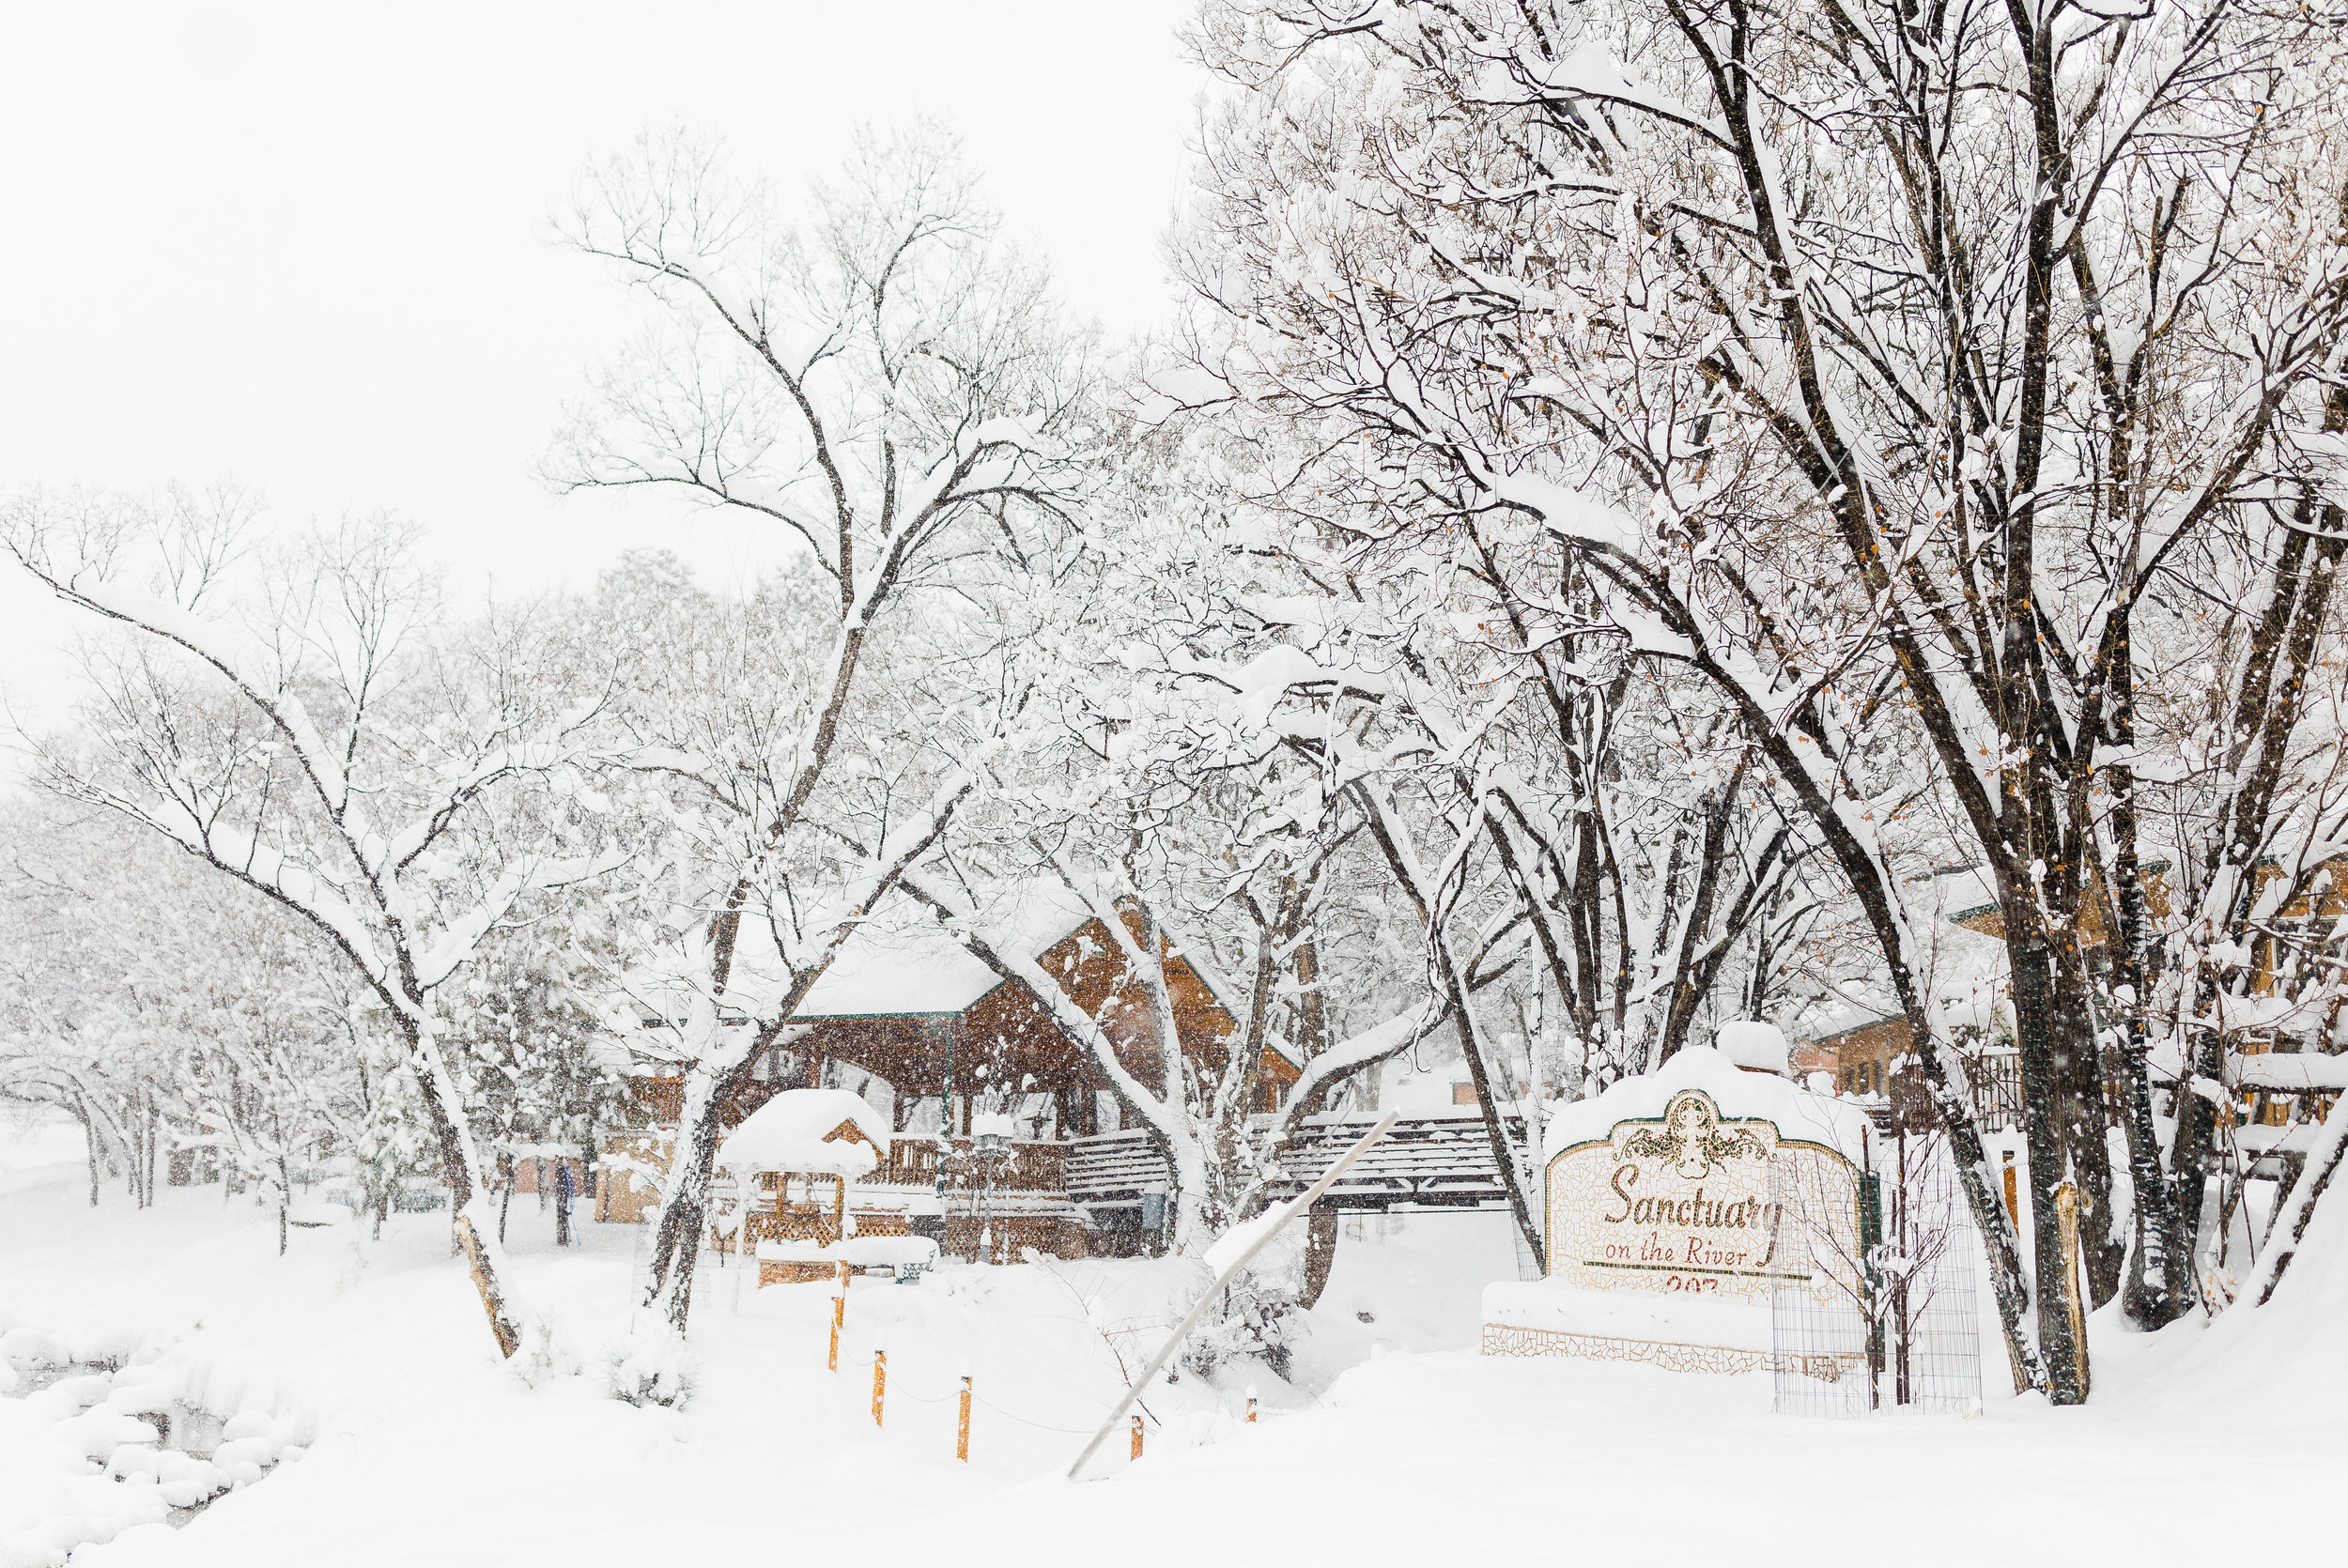 Sanctuary on the River winter scenic by  Chrisi K. Photography .